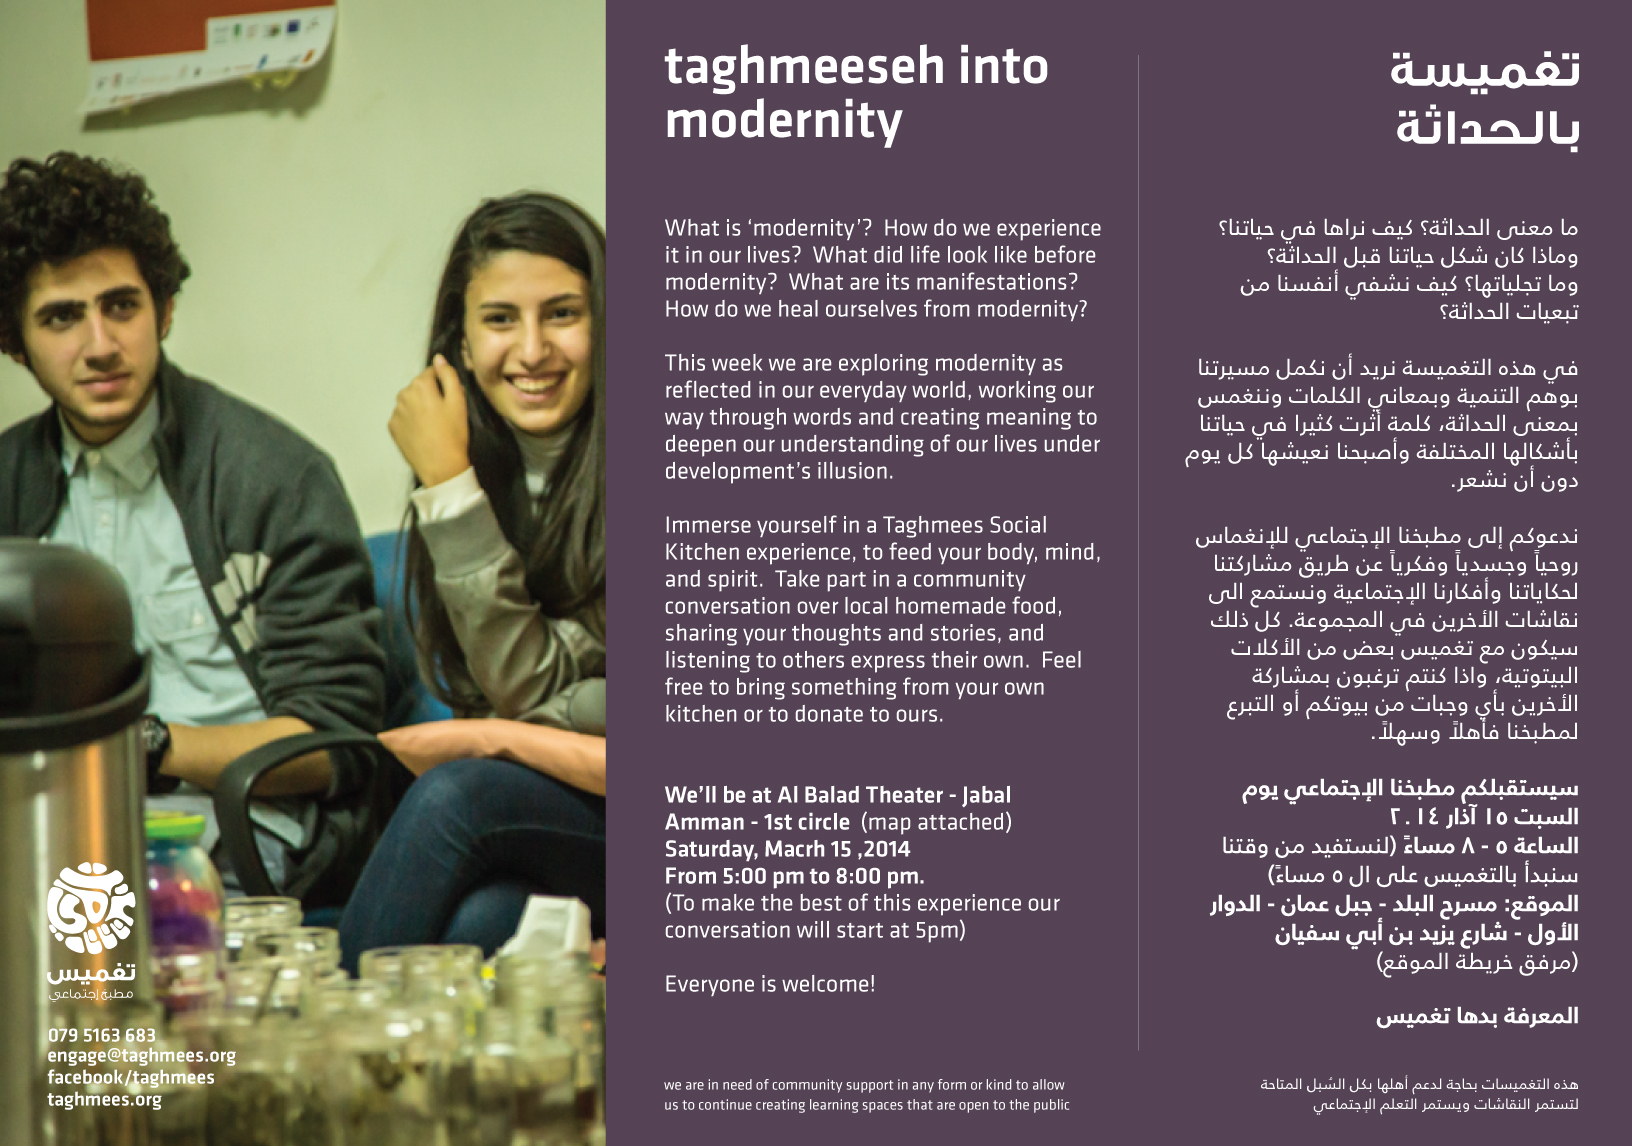 taghmeeseh-into-modernity